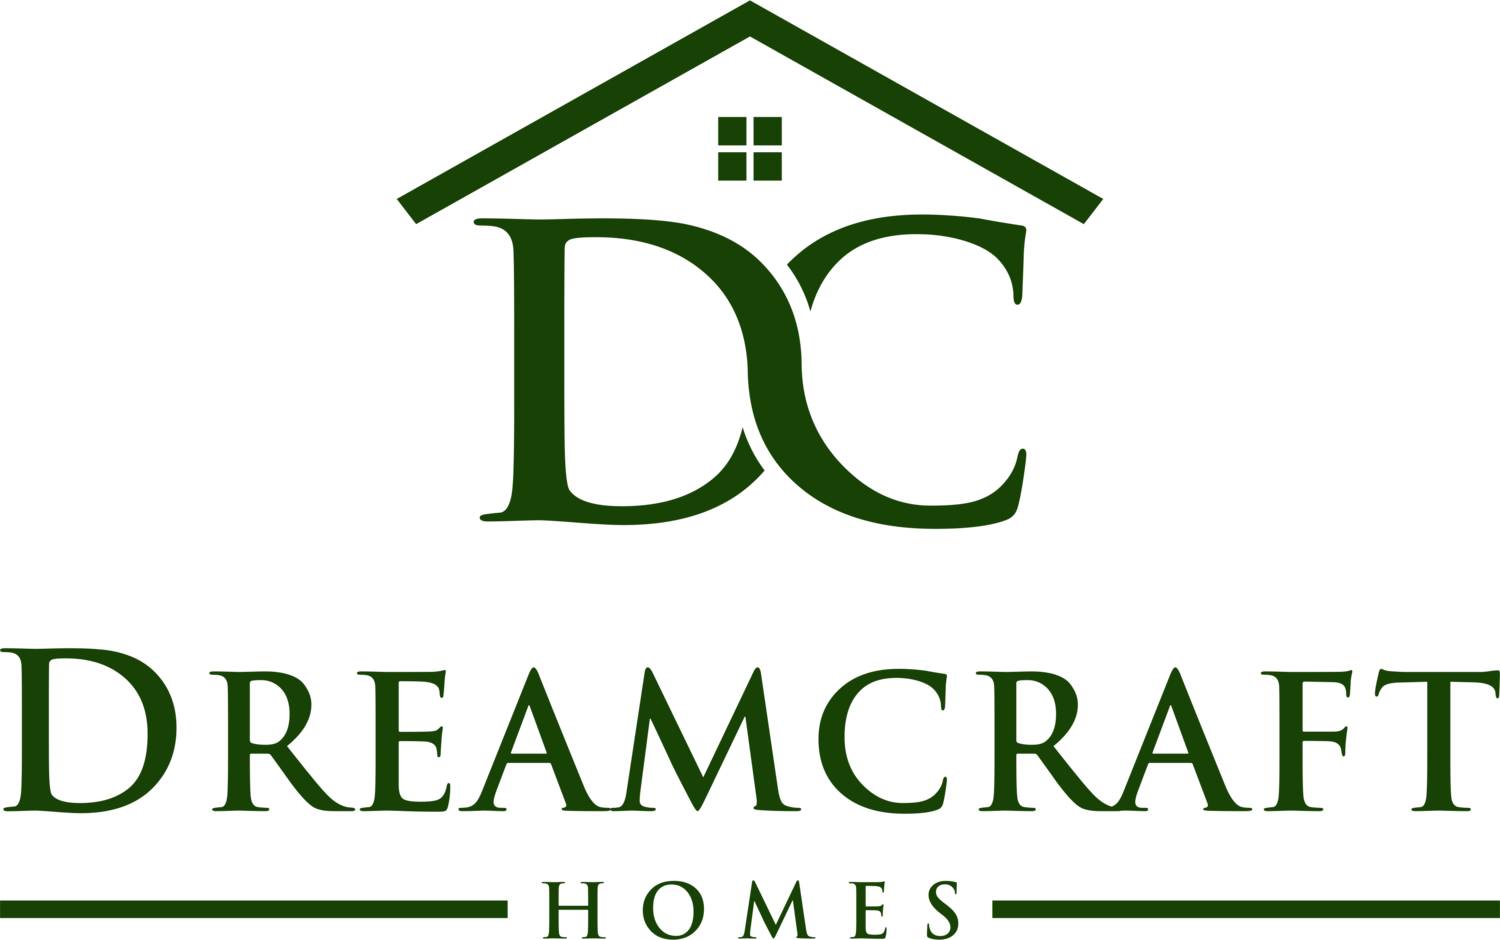 Dreamcraft Homes